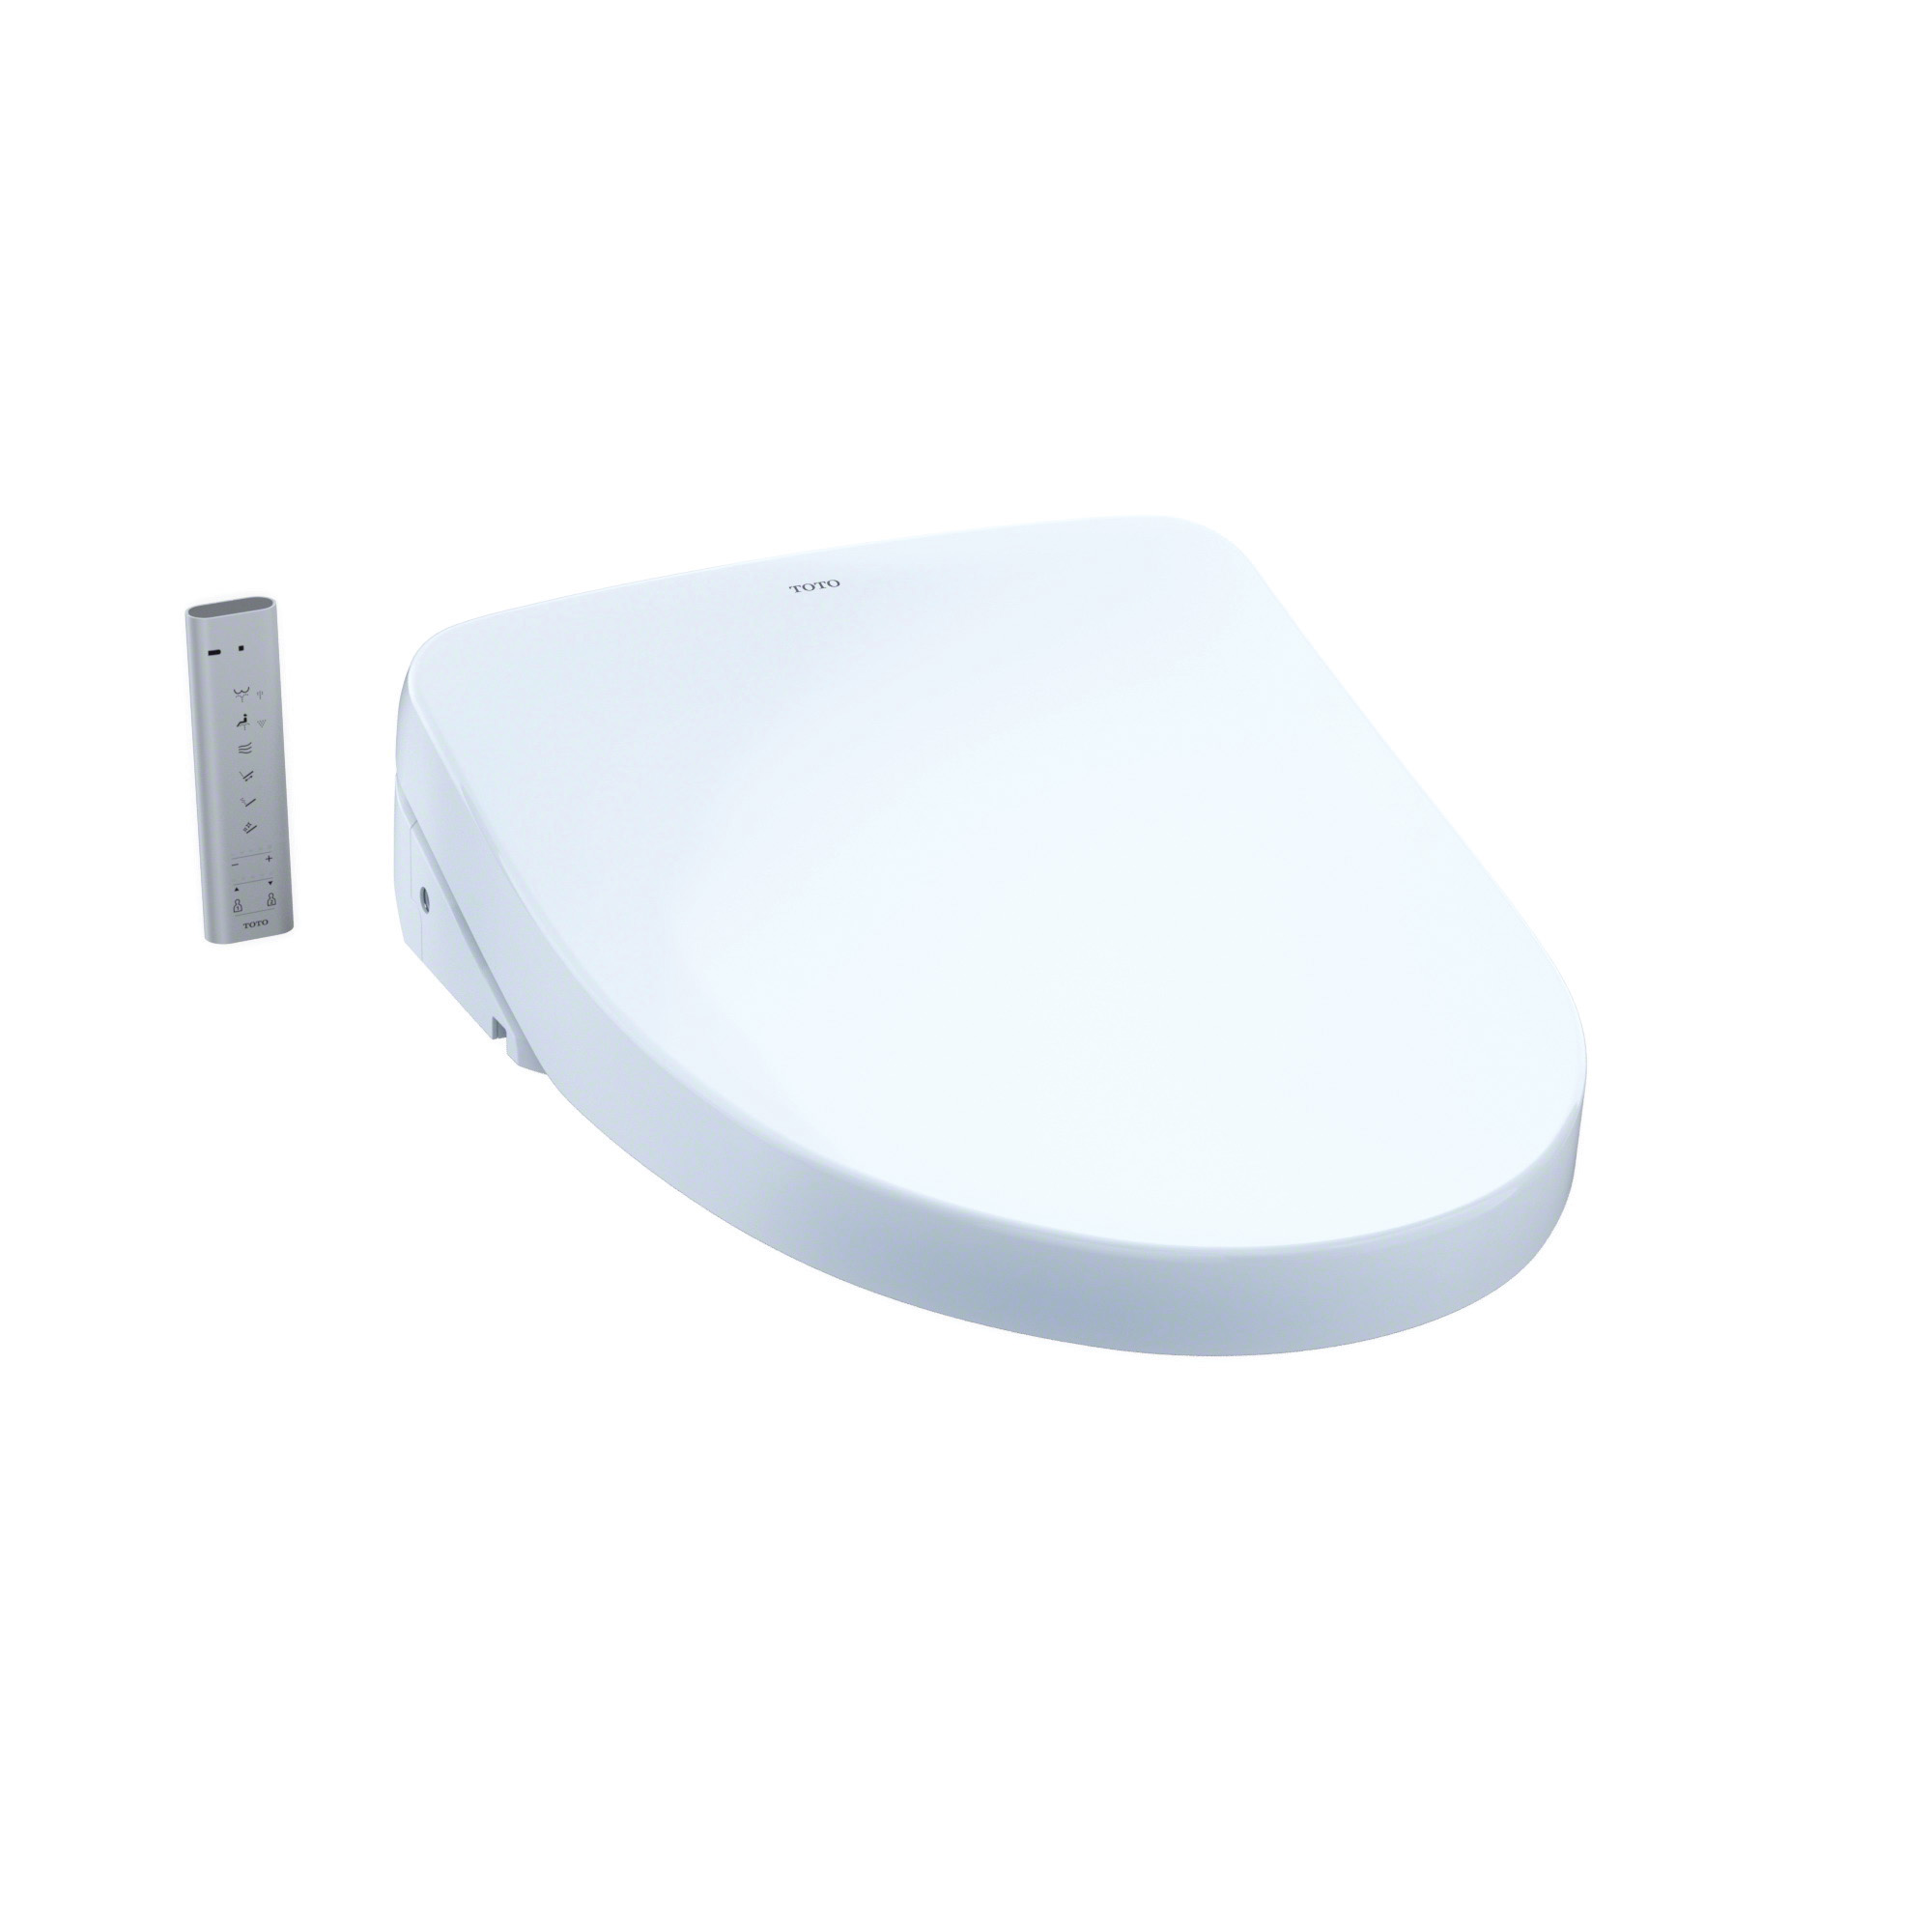 Toto® SW3046#01 Electronic Bidet Toilet Seat With ewater+® Technology, WASHLET® S500e, Elongated Front Bowl, Closed Front, Plastic, Cotton White, Import